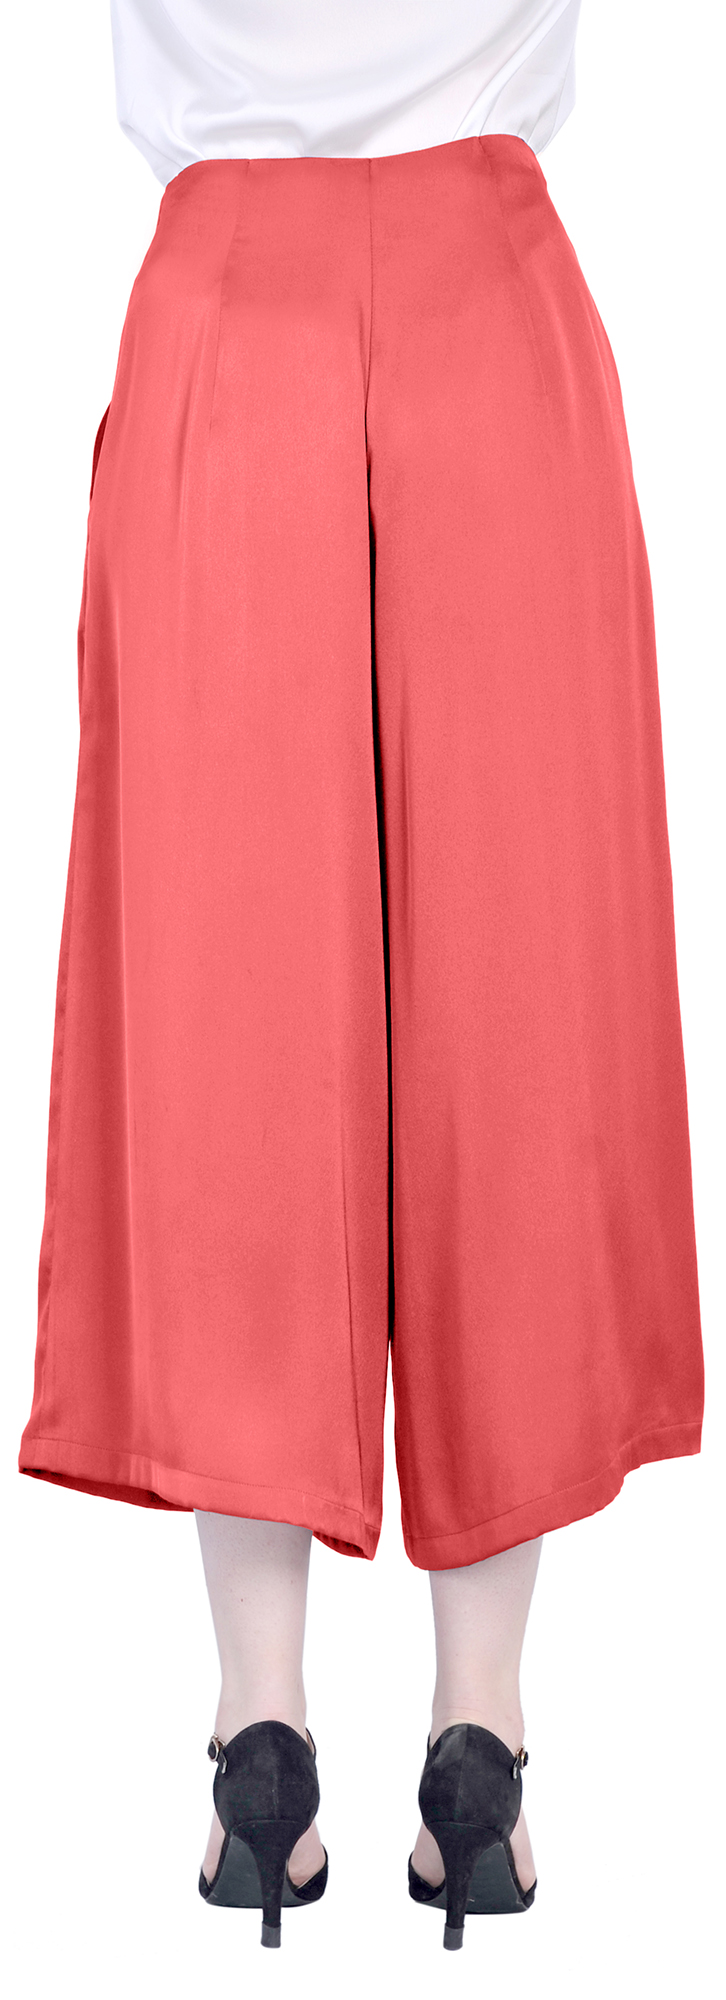 WOMENS SILKY SUMMER CROPPED WIDE LEG CULOTTE GAUCHO PANTS CULOTTES ...